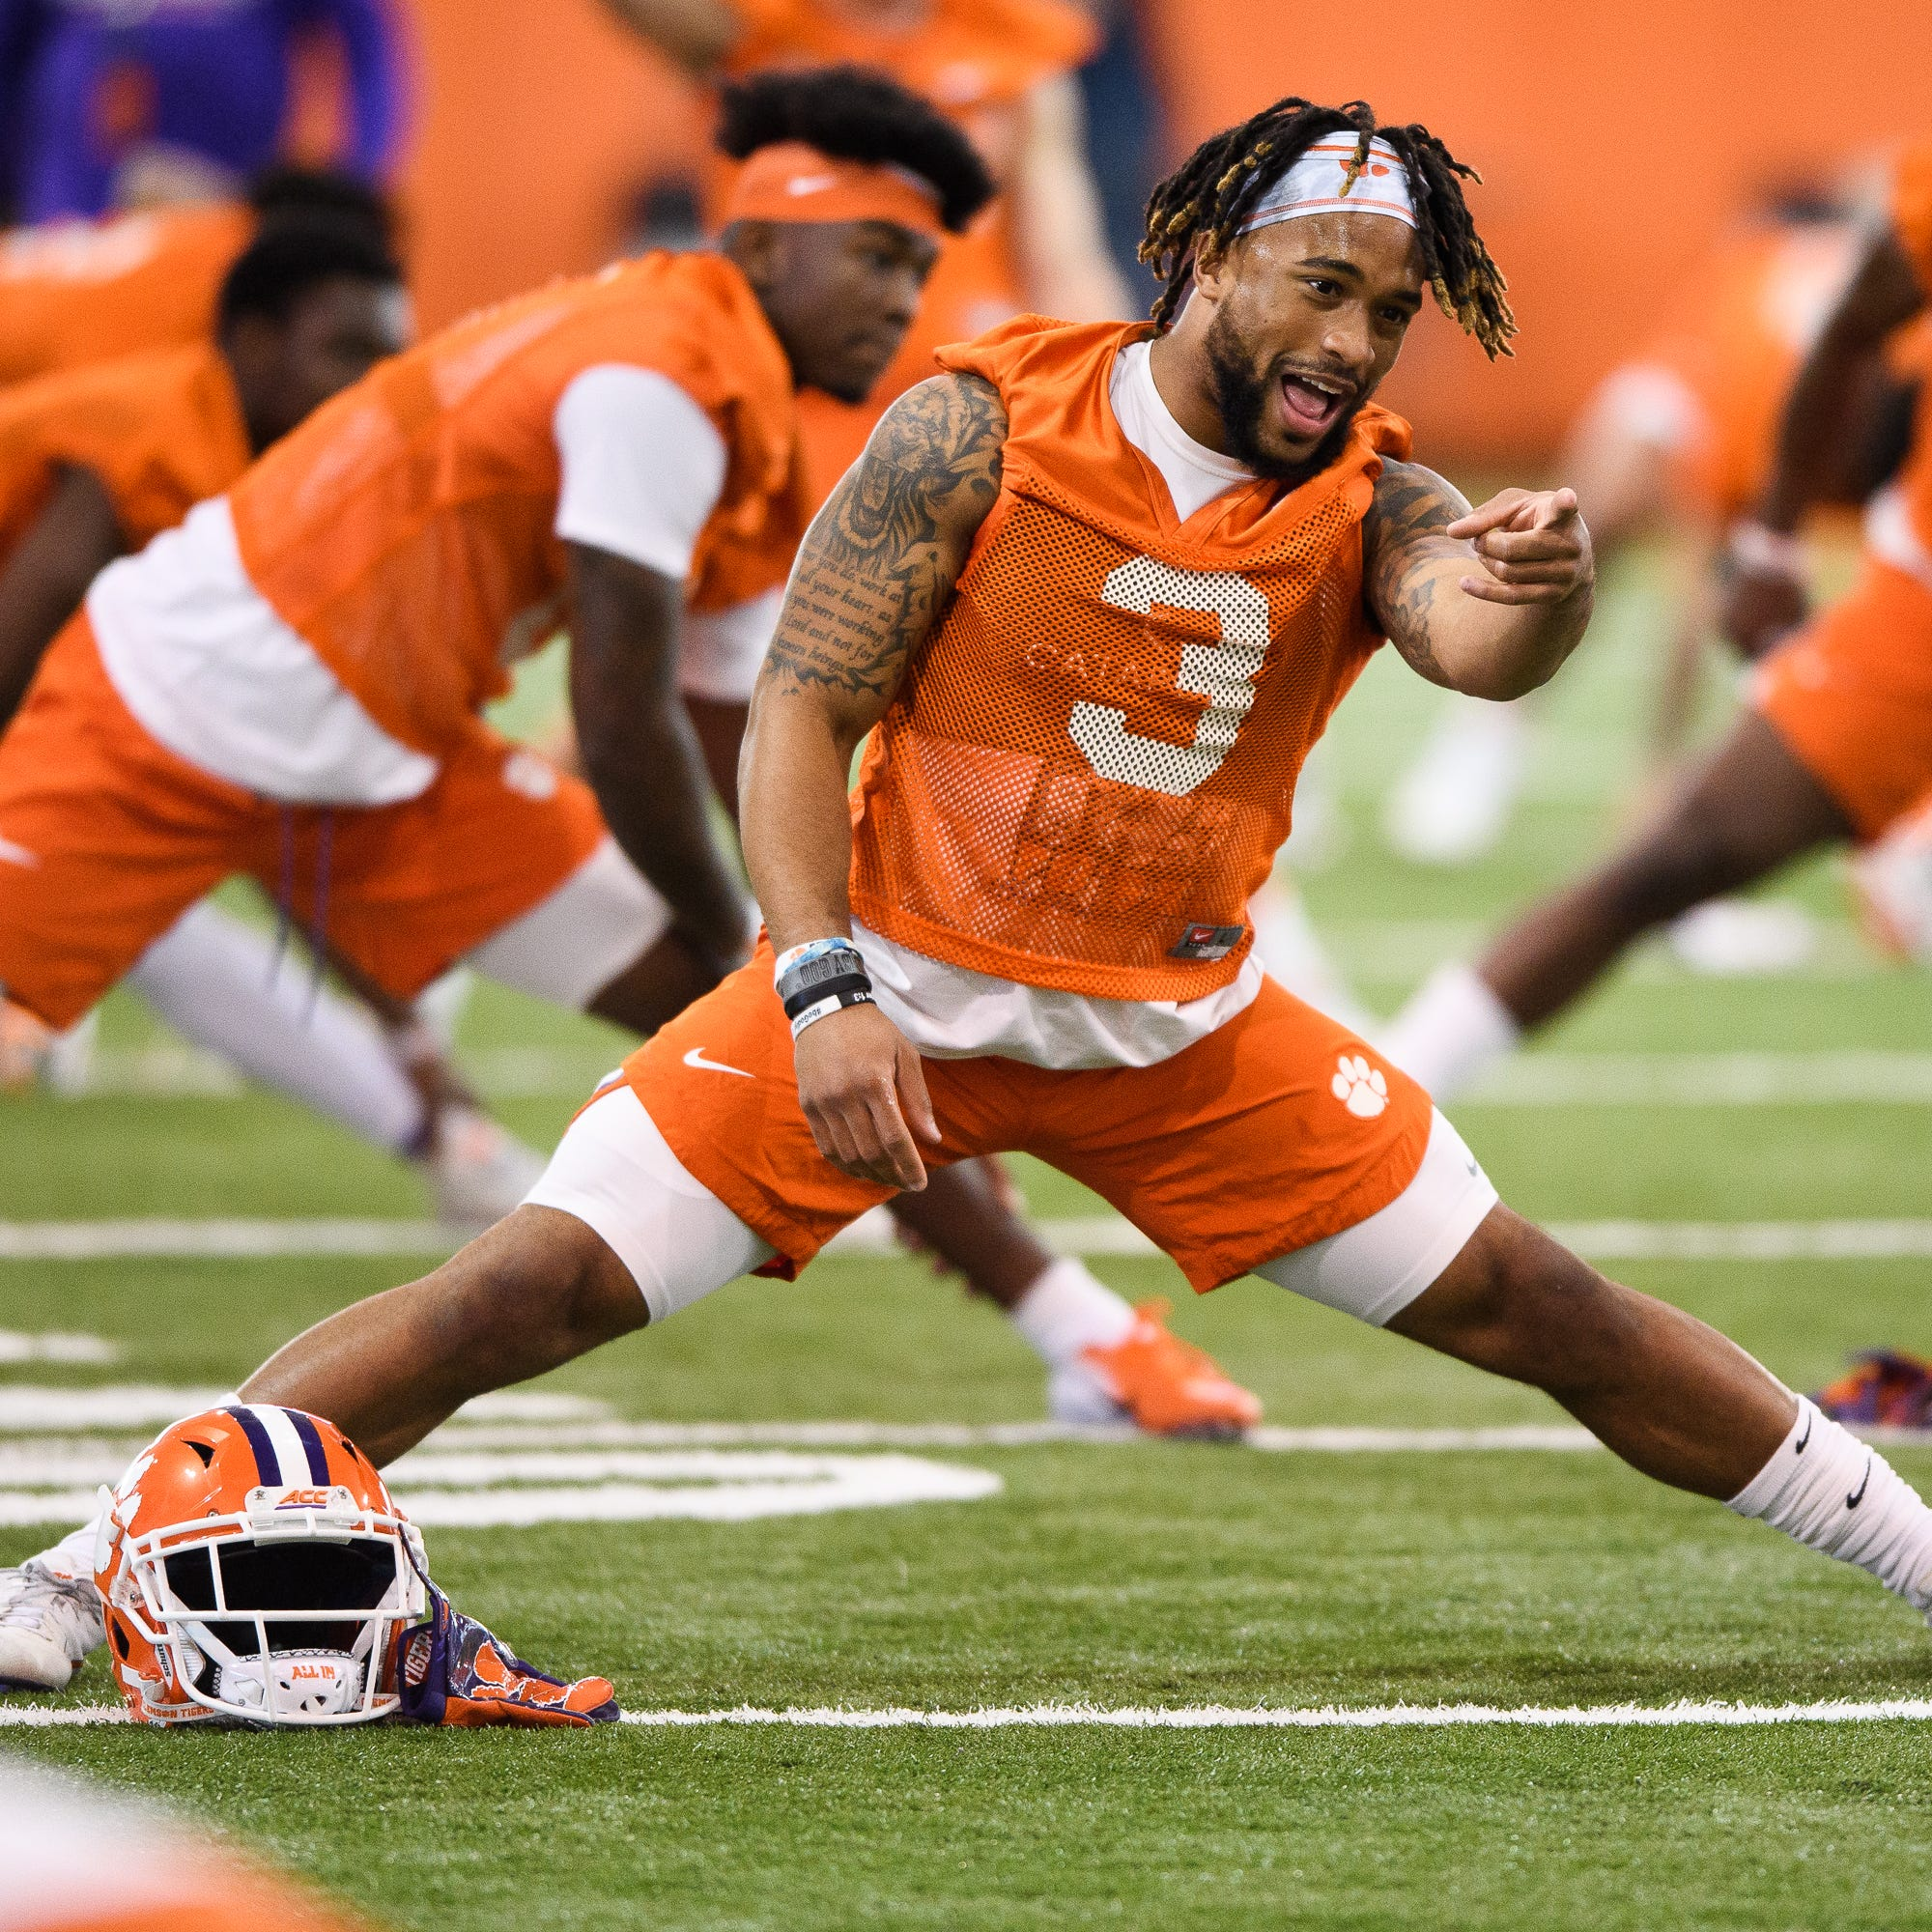 Clemson wide receiver Amari Rodgers awaiting test results after suffering leg injury